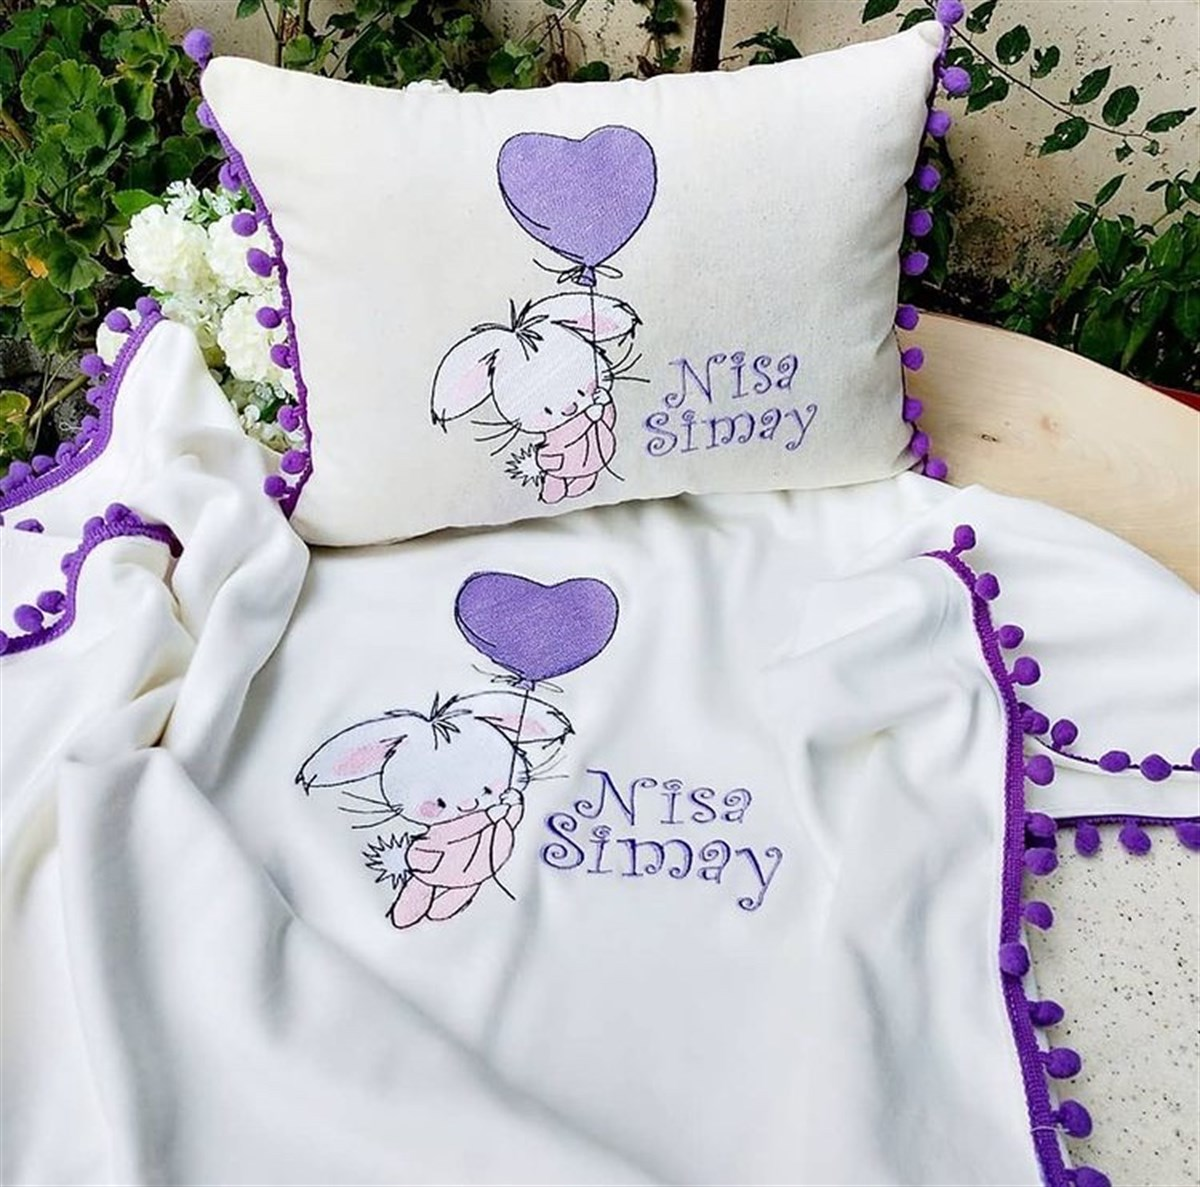 Jaju Baby Handmade Rabbit And Name Embroidered Baby Pillow and Coverlet